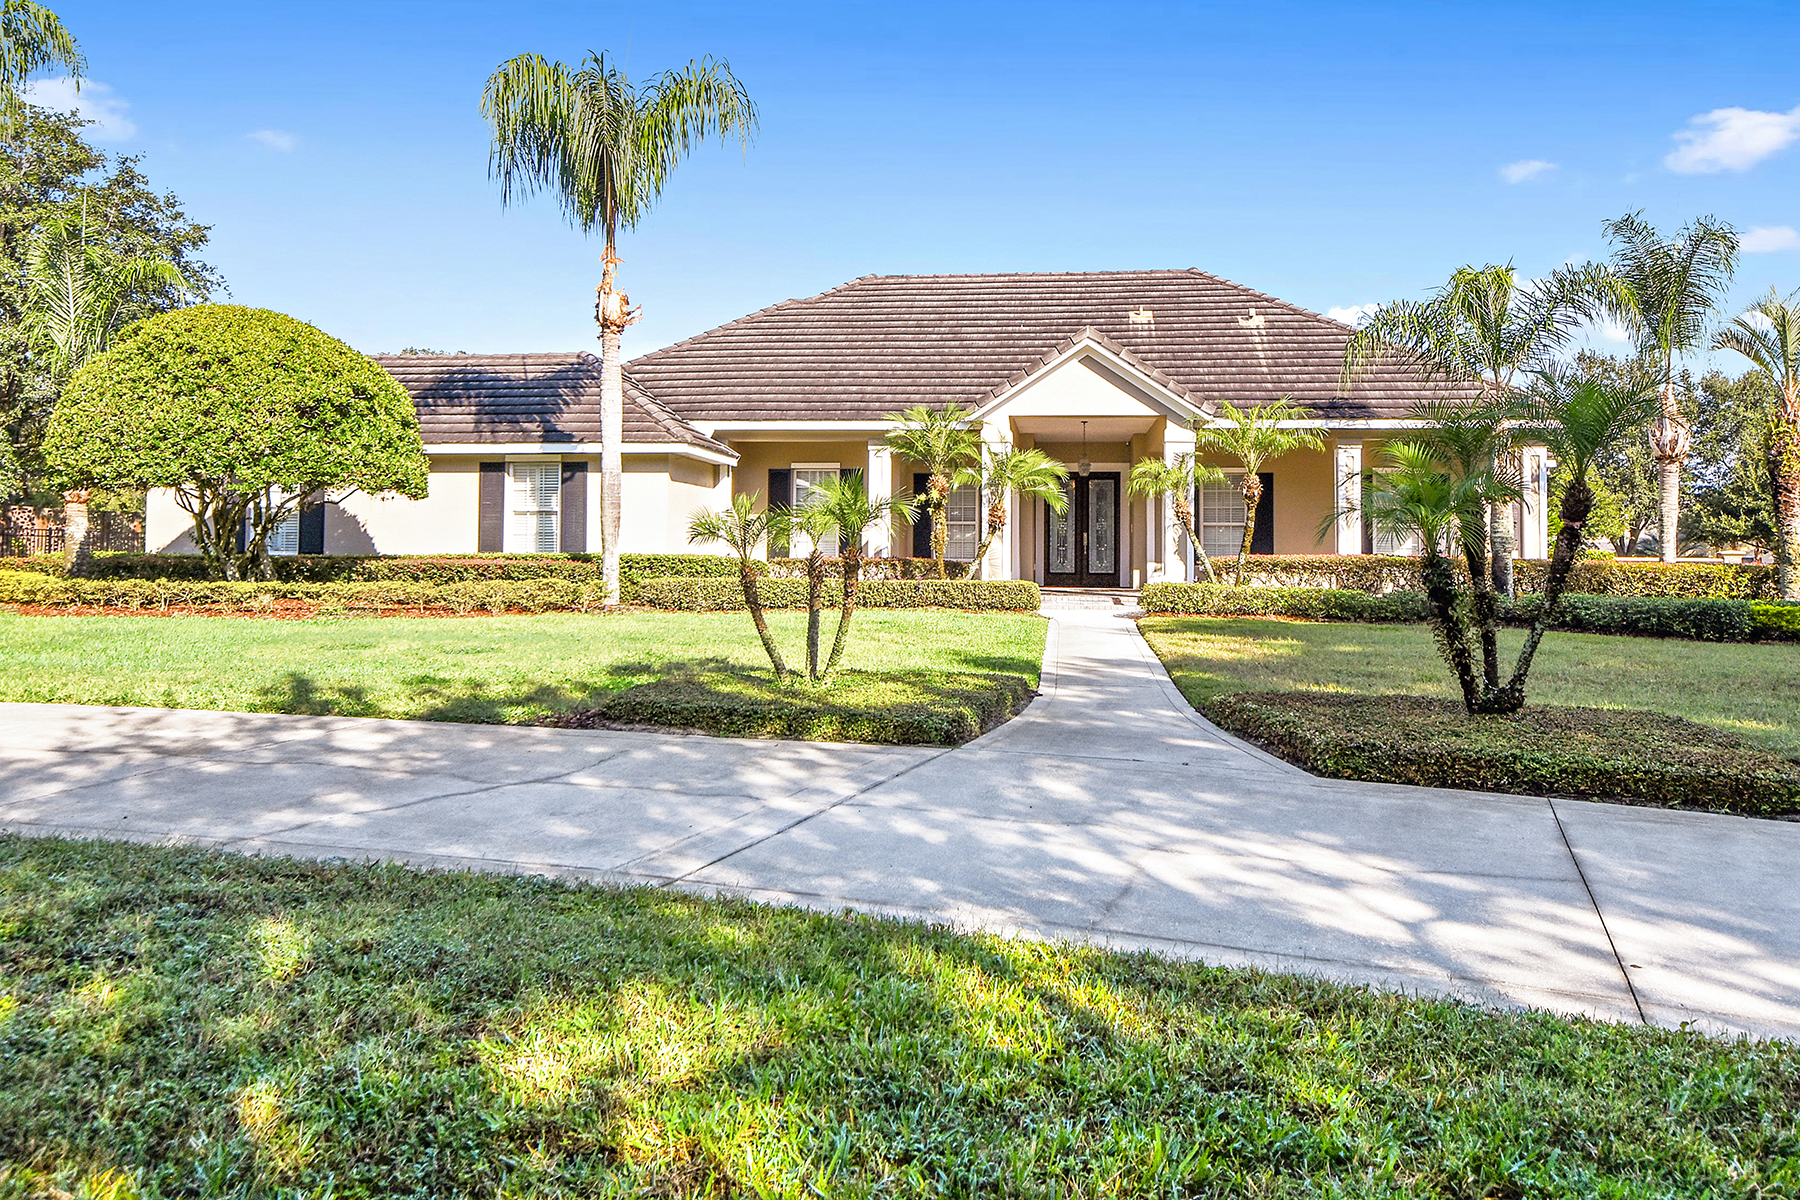 Single Family Homes for Sale at WINDERMERE-ORLANDO 9633 Weatherstone Ct Windermere, Florida 34786 United States